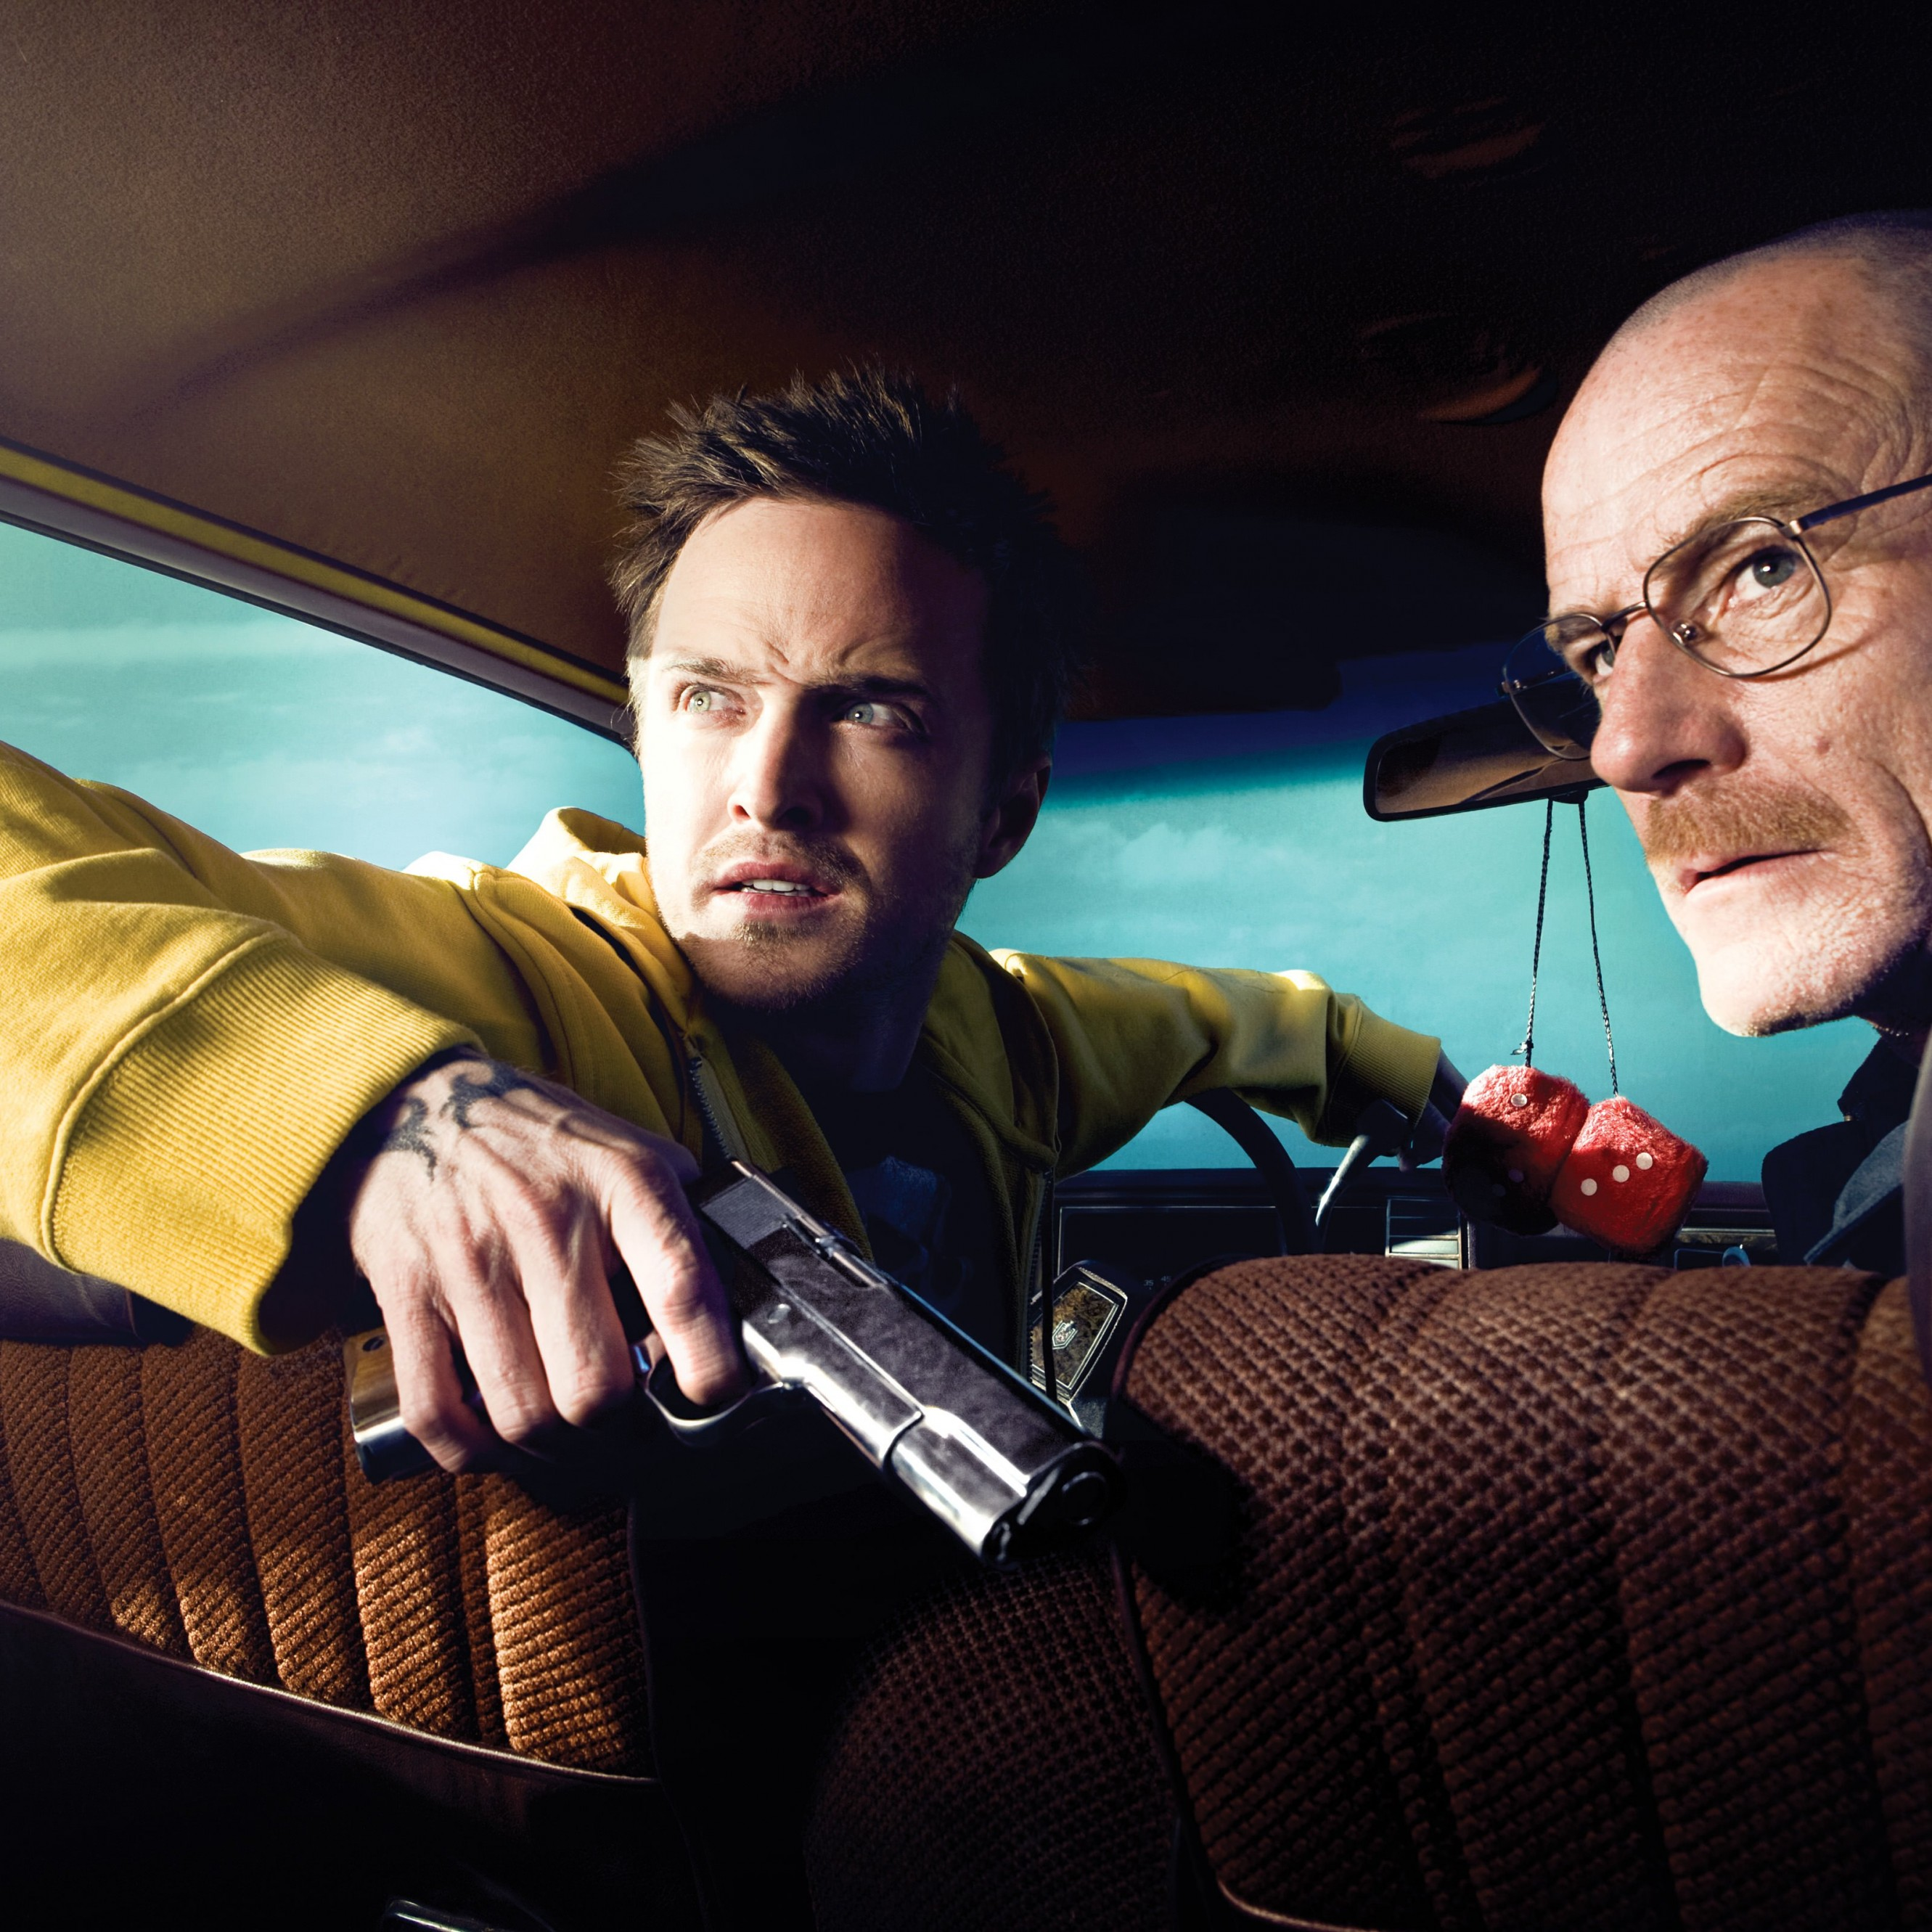 Breaking Bad - Jesse Pinkman & Walter White Wallpaper for Apple iPhone 6 Plus